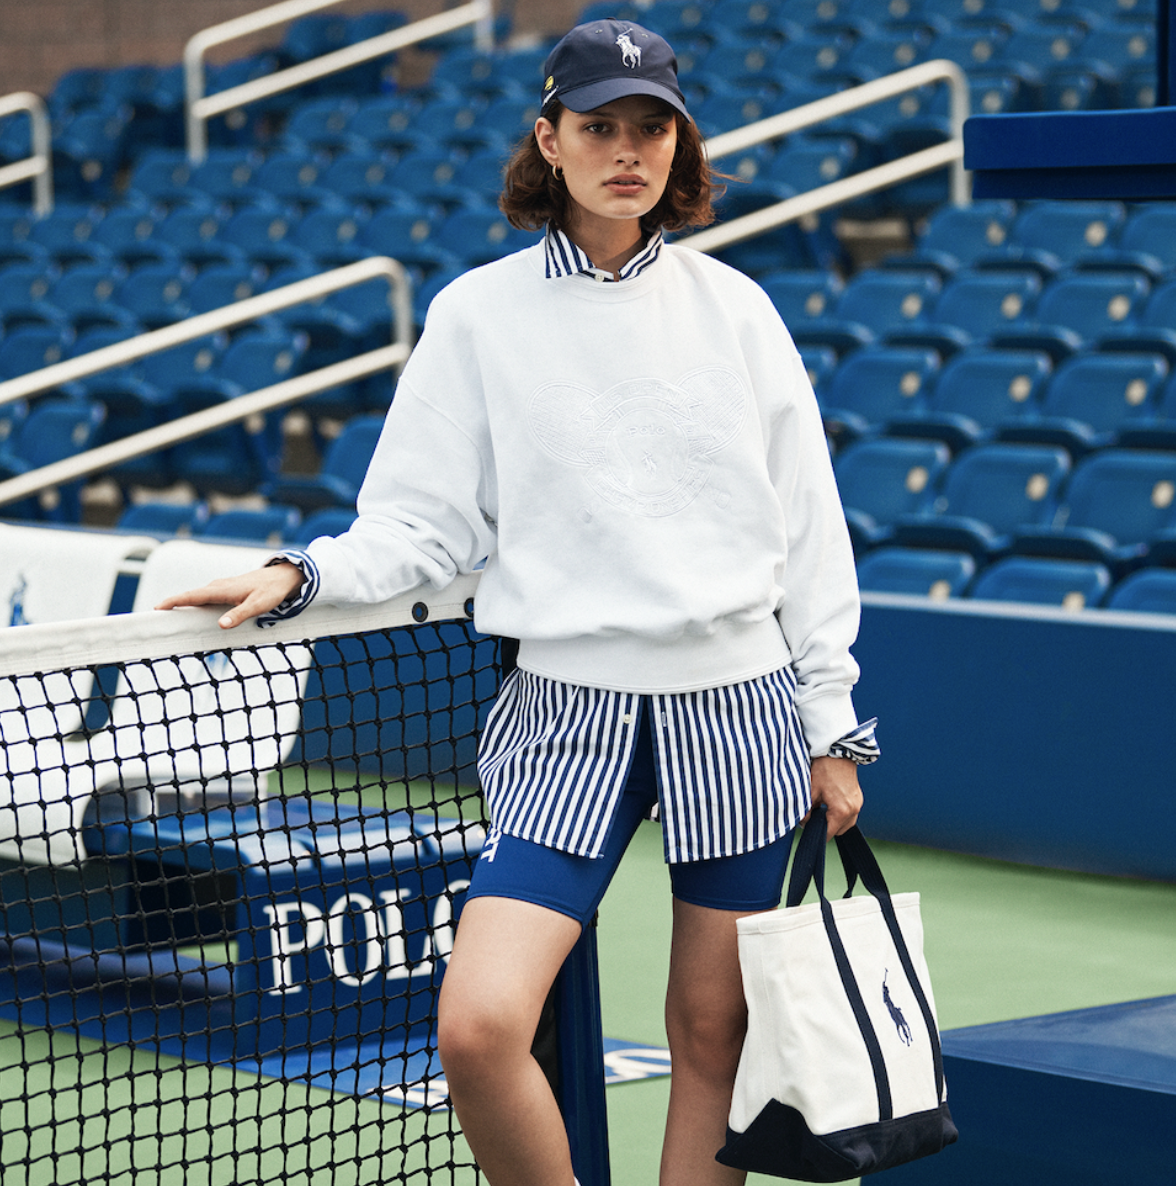 What2wearwhere Karen klopp Weekly Fave 5 Quest  Ralph Lauren celebrates the revival of new york at 2021 US Open championships.